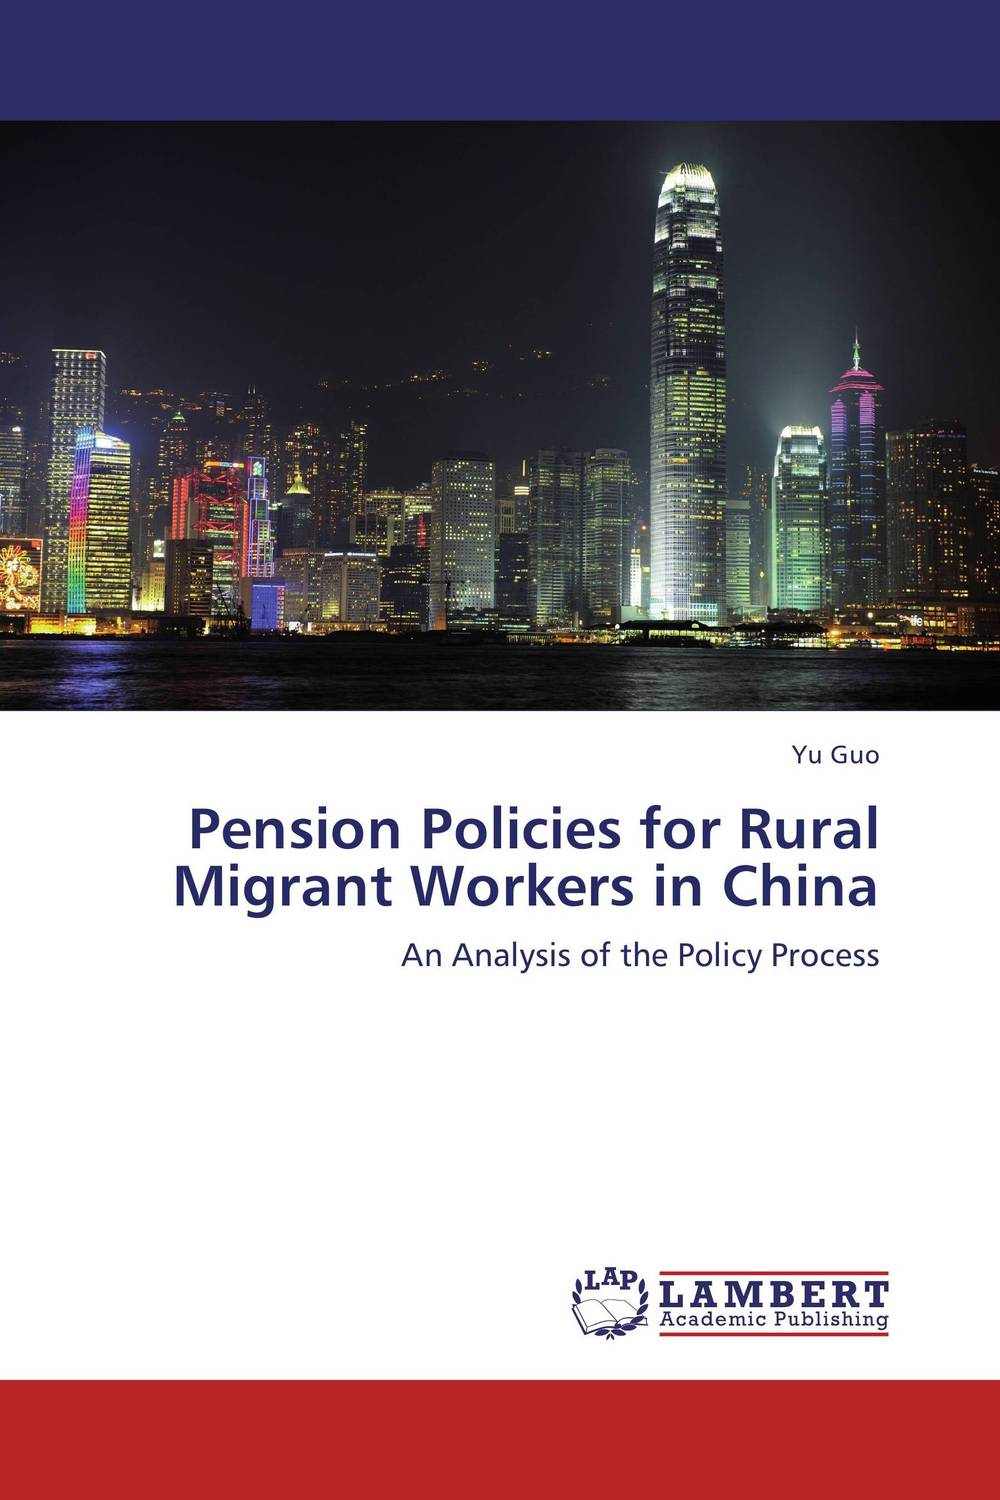 Pension Policies for Rural Migrant Workers in China aging population and pension system reform in china